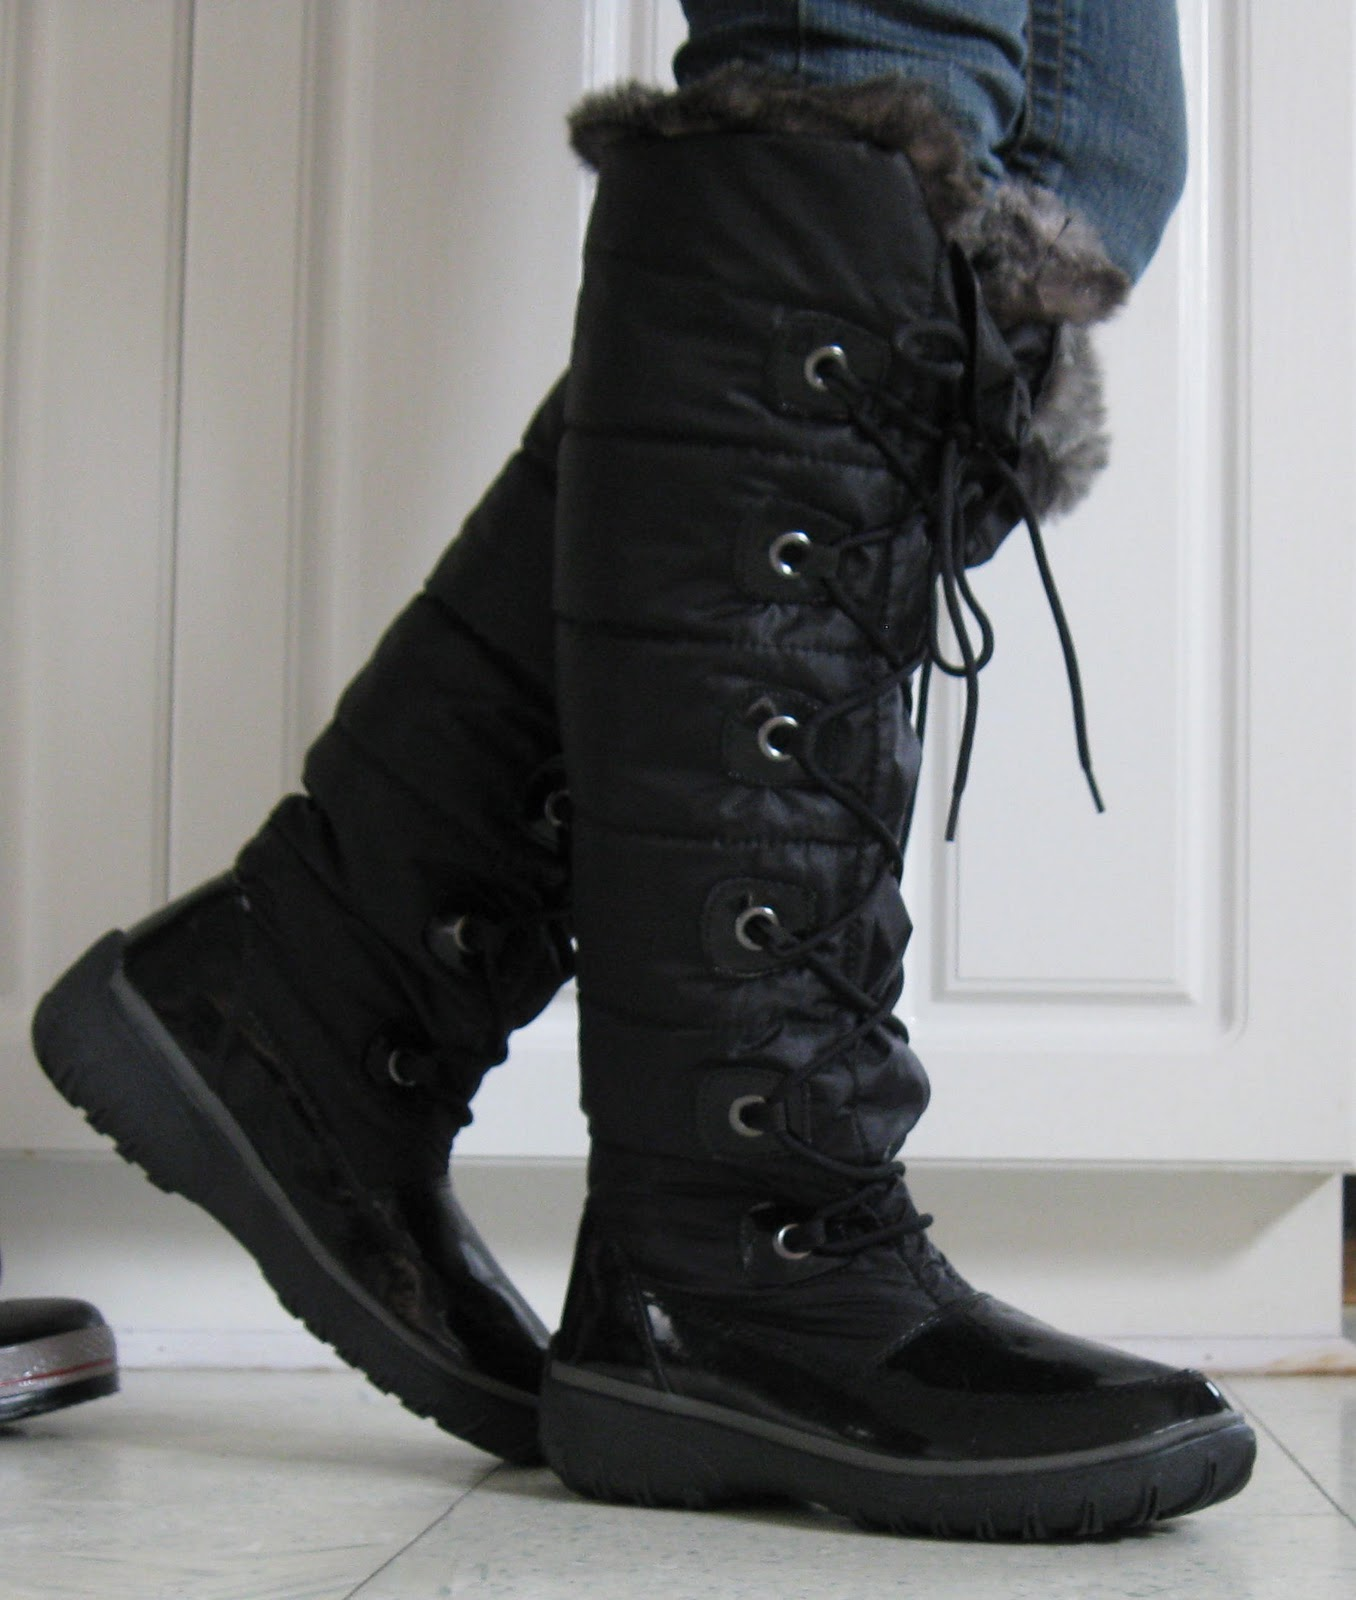 Review Cougar Boots